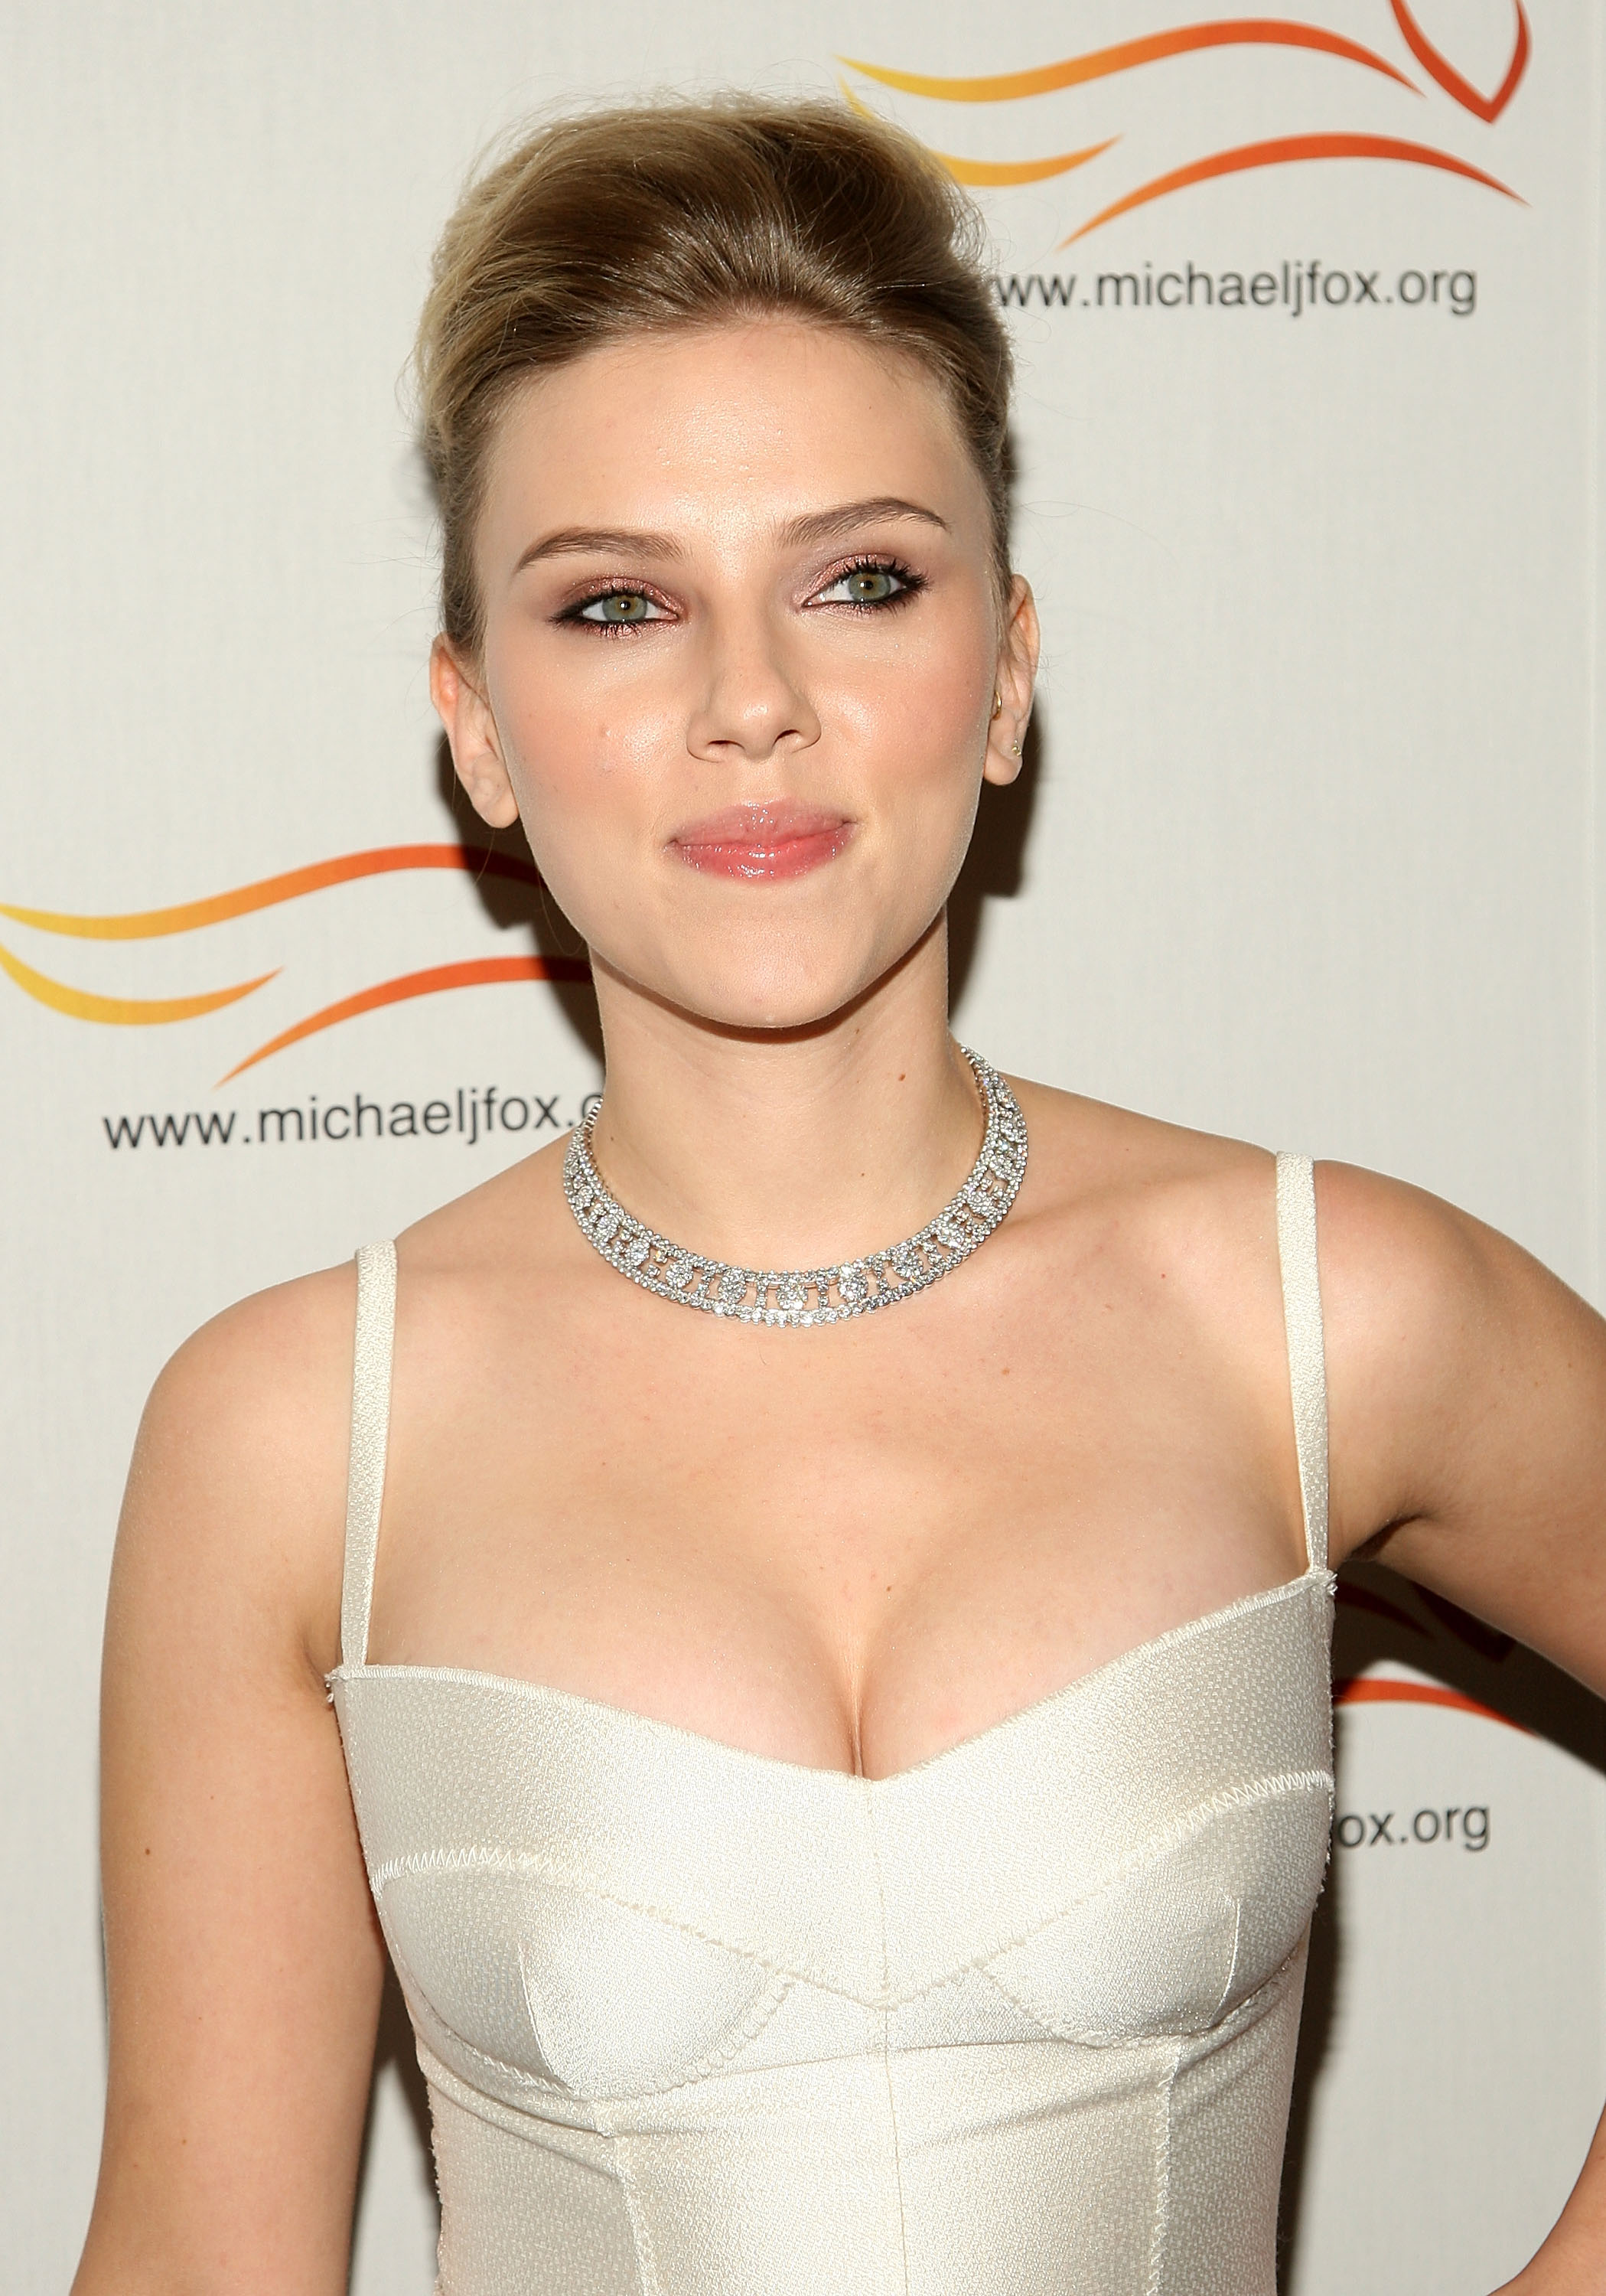 54450_Celebutopia-Scarlett_Johansson-A_Funny_Thing_Happened_on_the_Way_to_Cure_Parkinsons-07_122_488lo.jpg